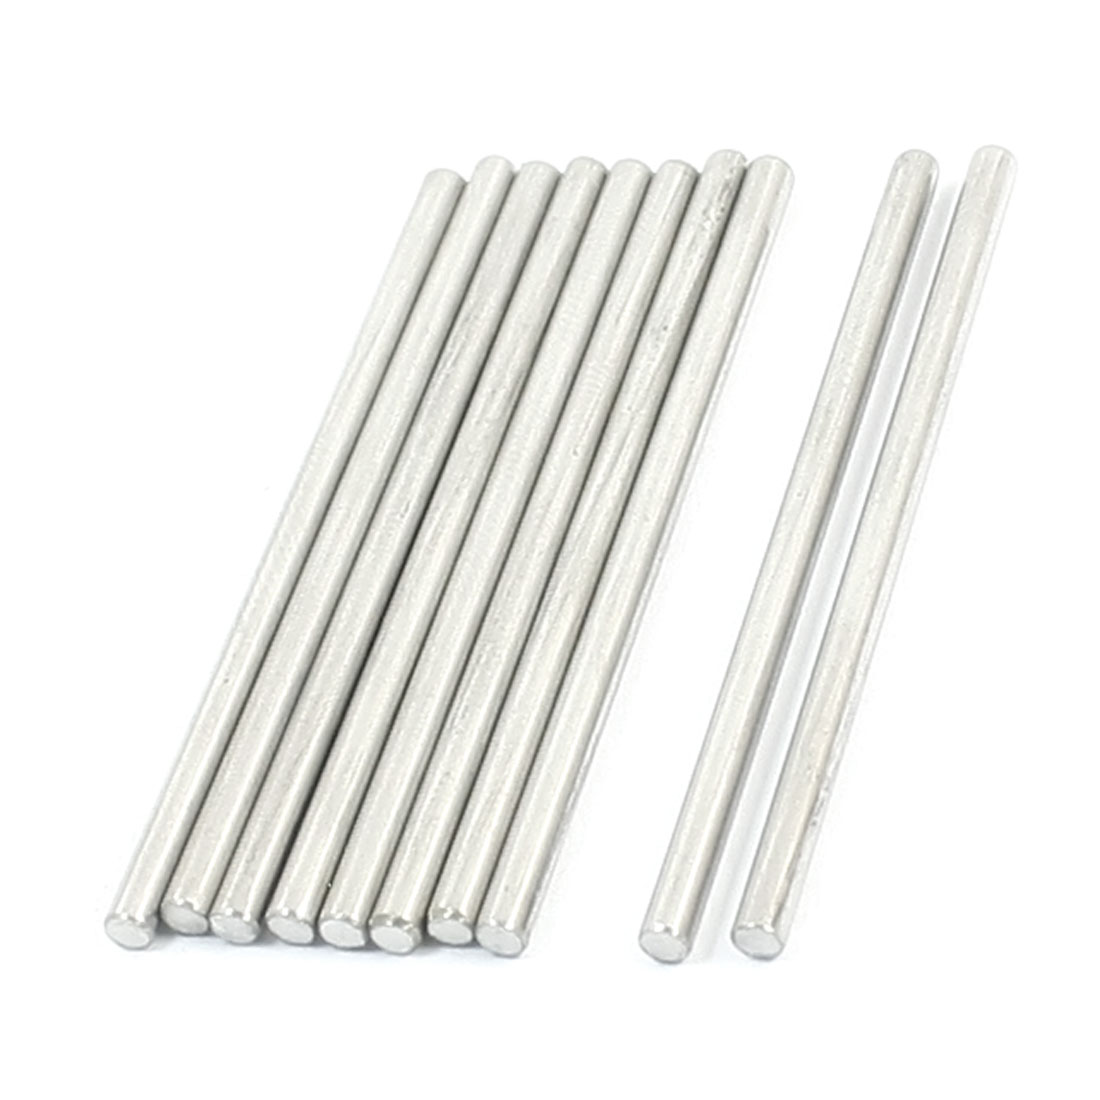 10pcs Silver Tone Stainless Steel 50 x 2.5mm Round Rod Shaft for RC Model